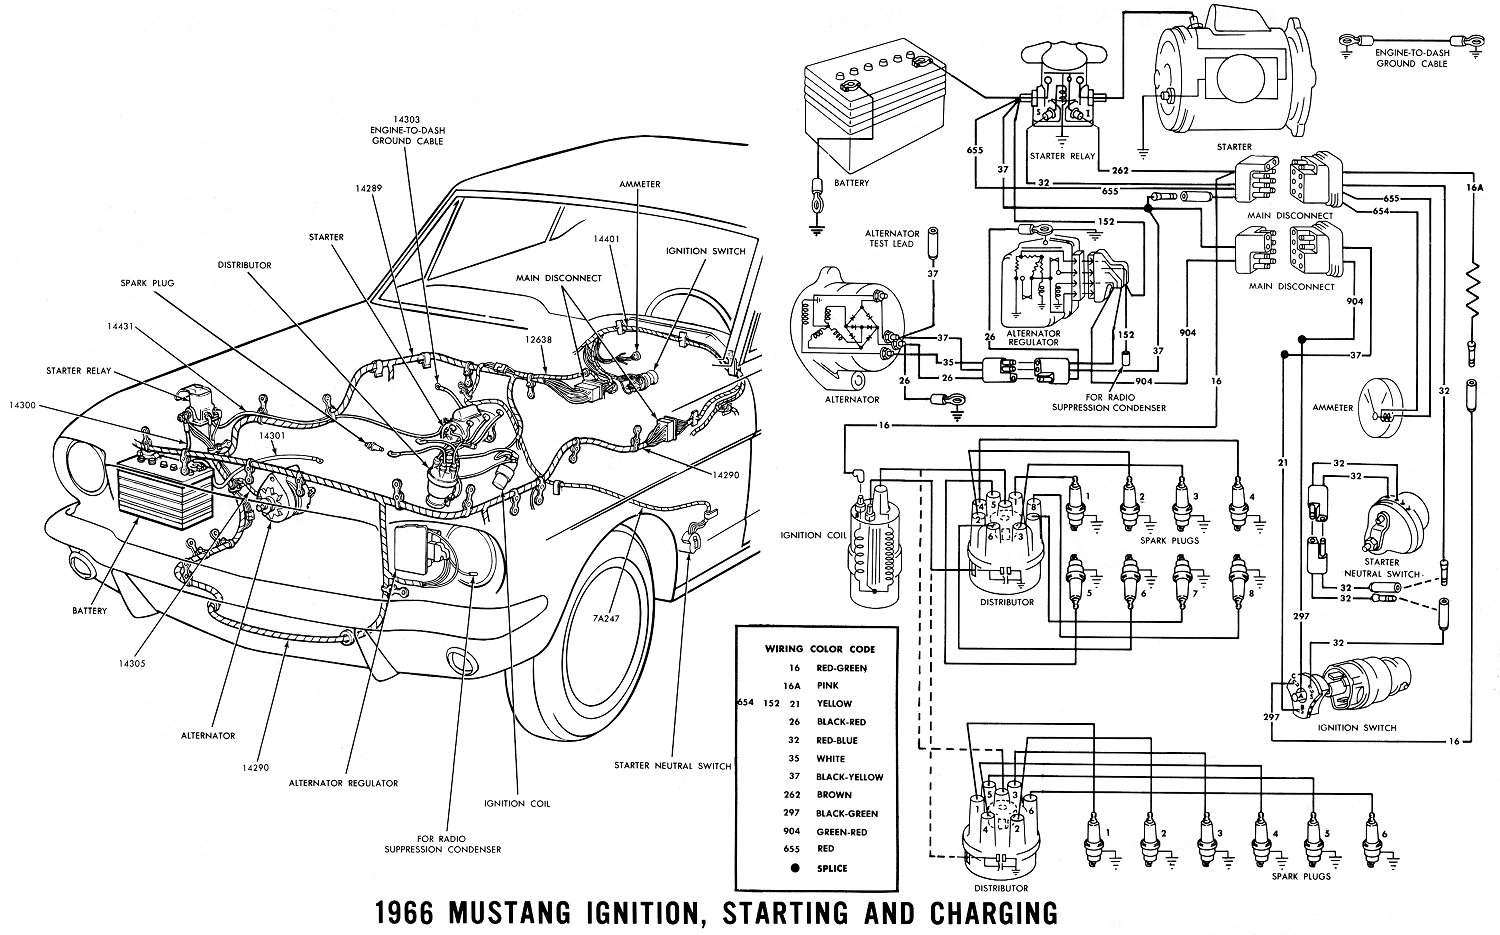 1966 mustang wiring diagrams average joe restoration 1966 mustang wiring diagrams electrical schematics 1966 mustang ignition, starting and charging